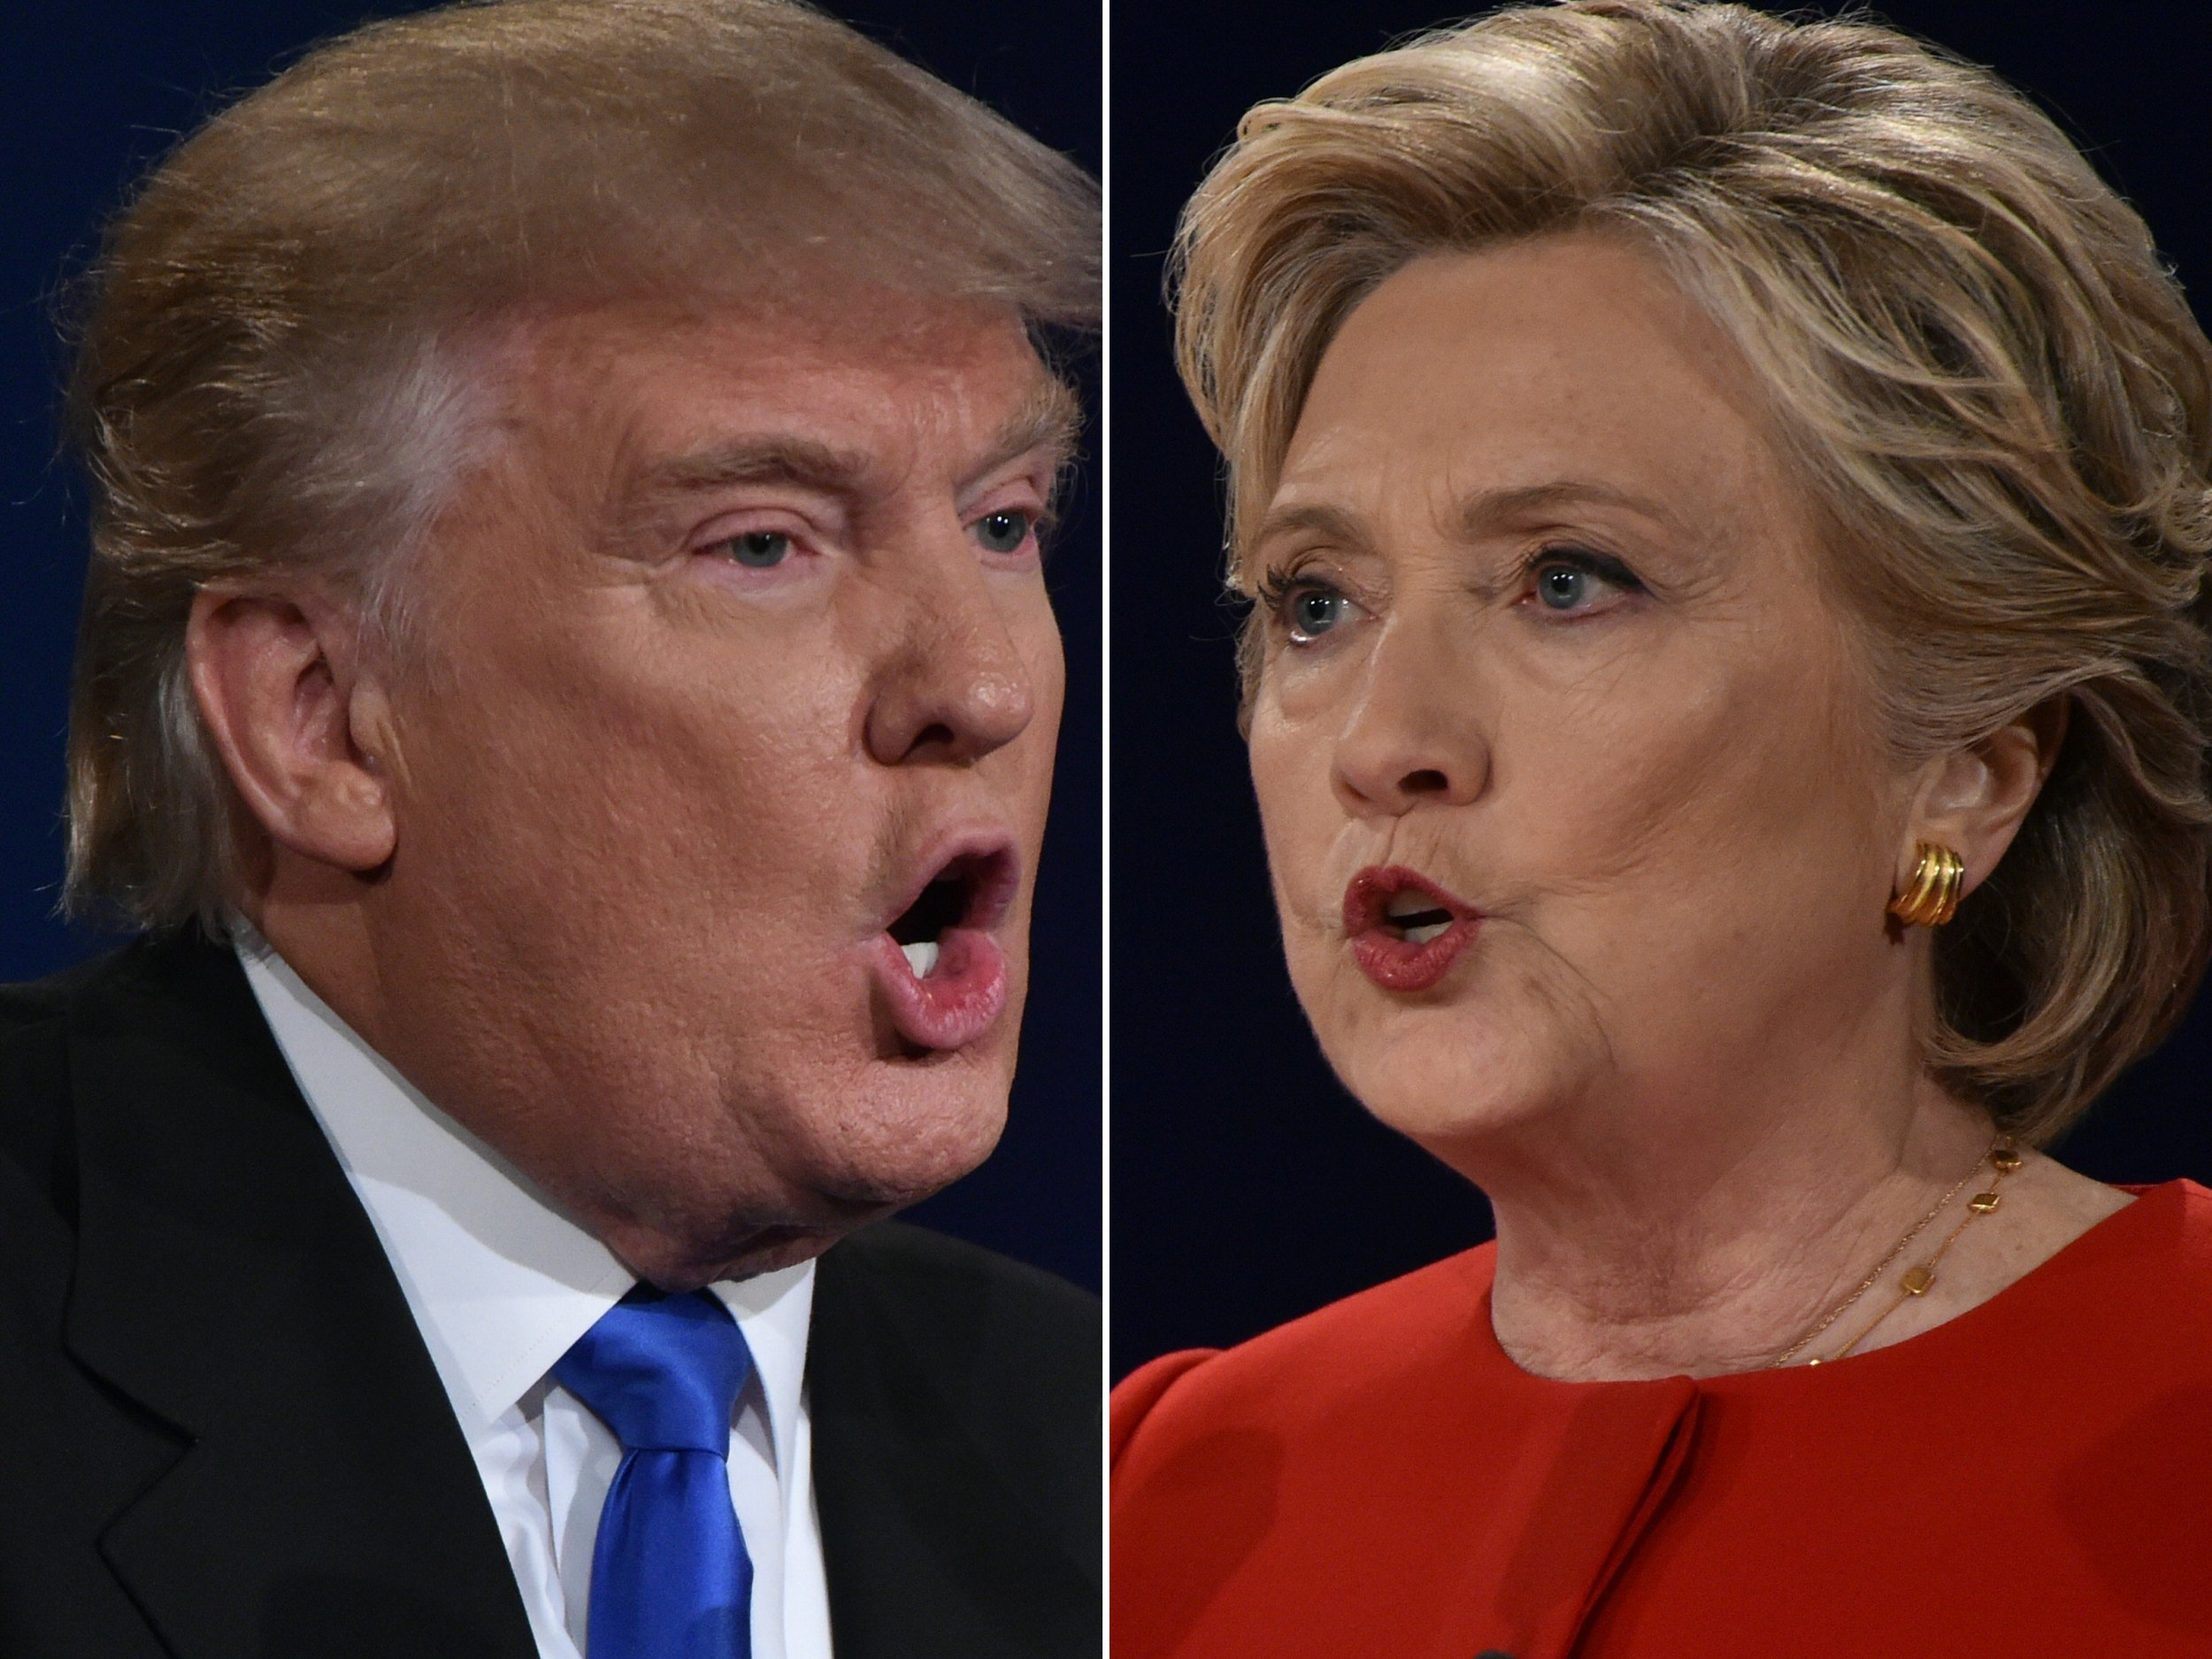 Clinton v Trump debate